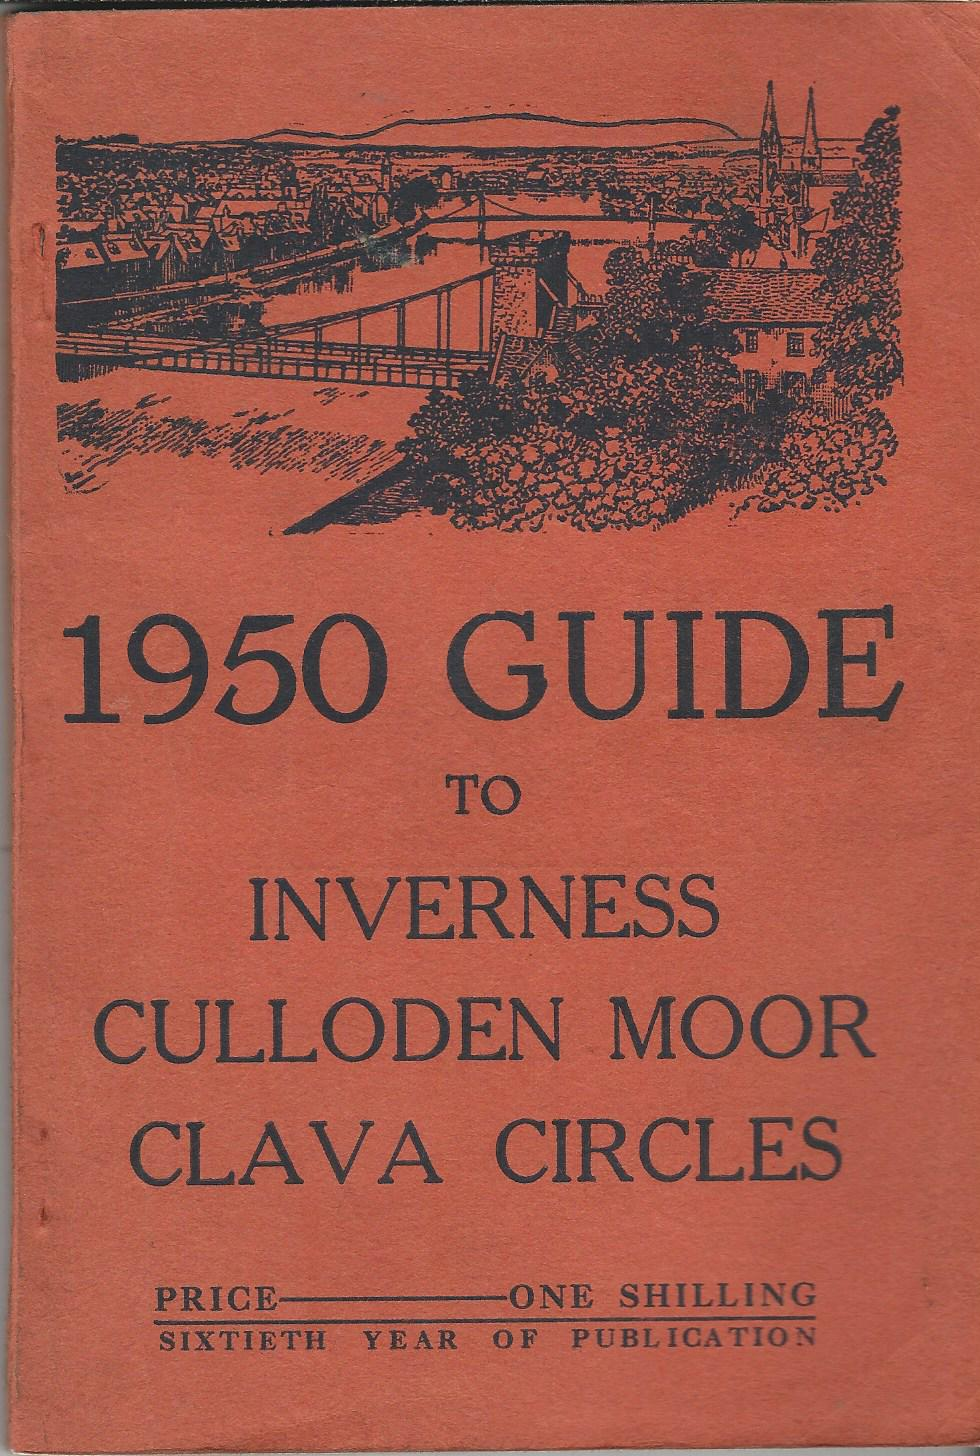 Image for Inverness Courier1950 Guide to Inverness, Culloden Moor, Clava Circles.